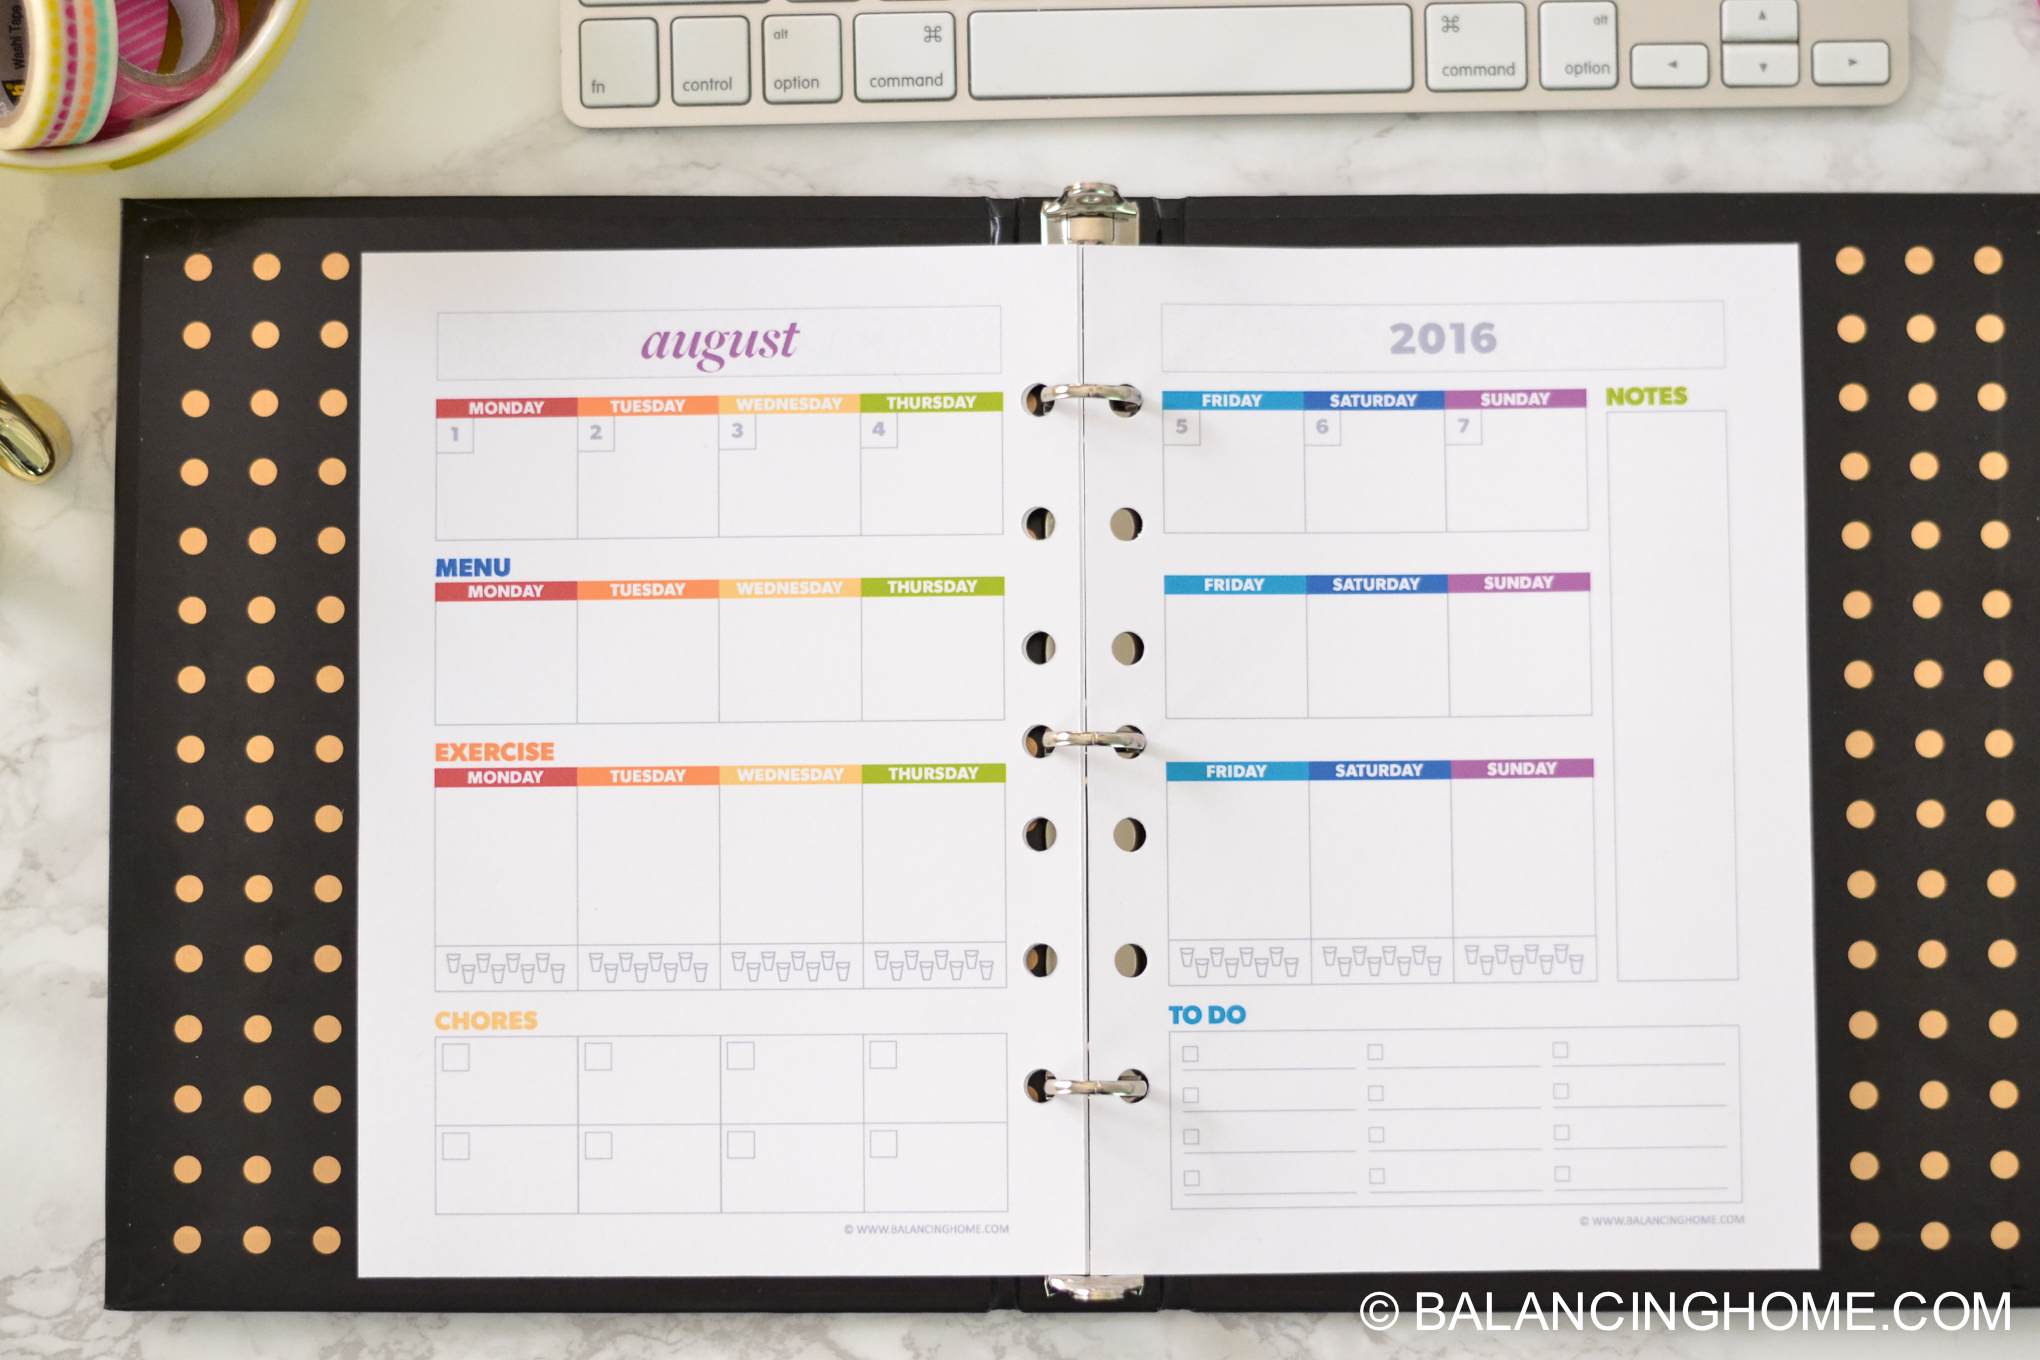 Planner A5 An Organized Life- organizing planning printable template - weekly organizer